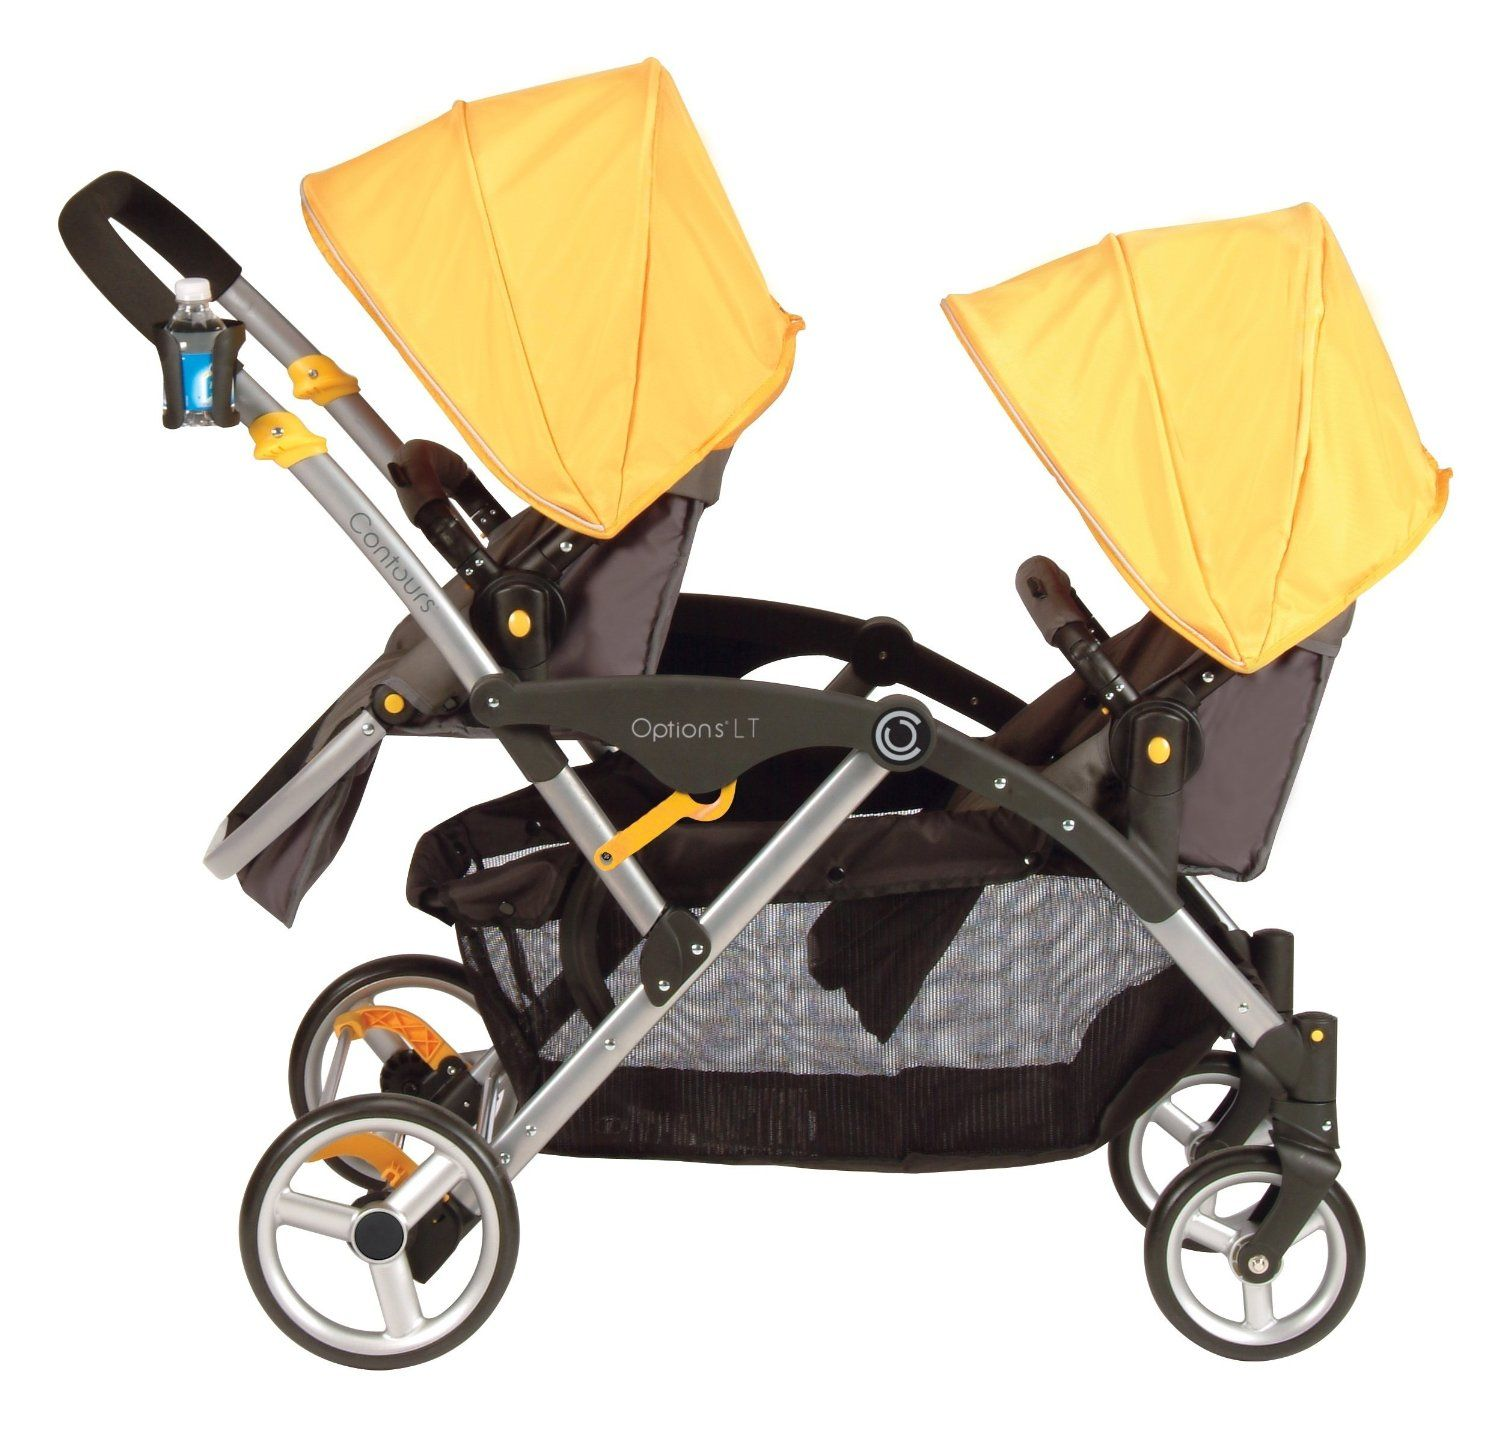 And the winner is... Contours Options LT Tandem Stroller